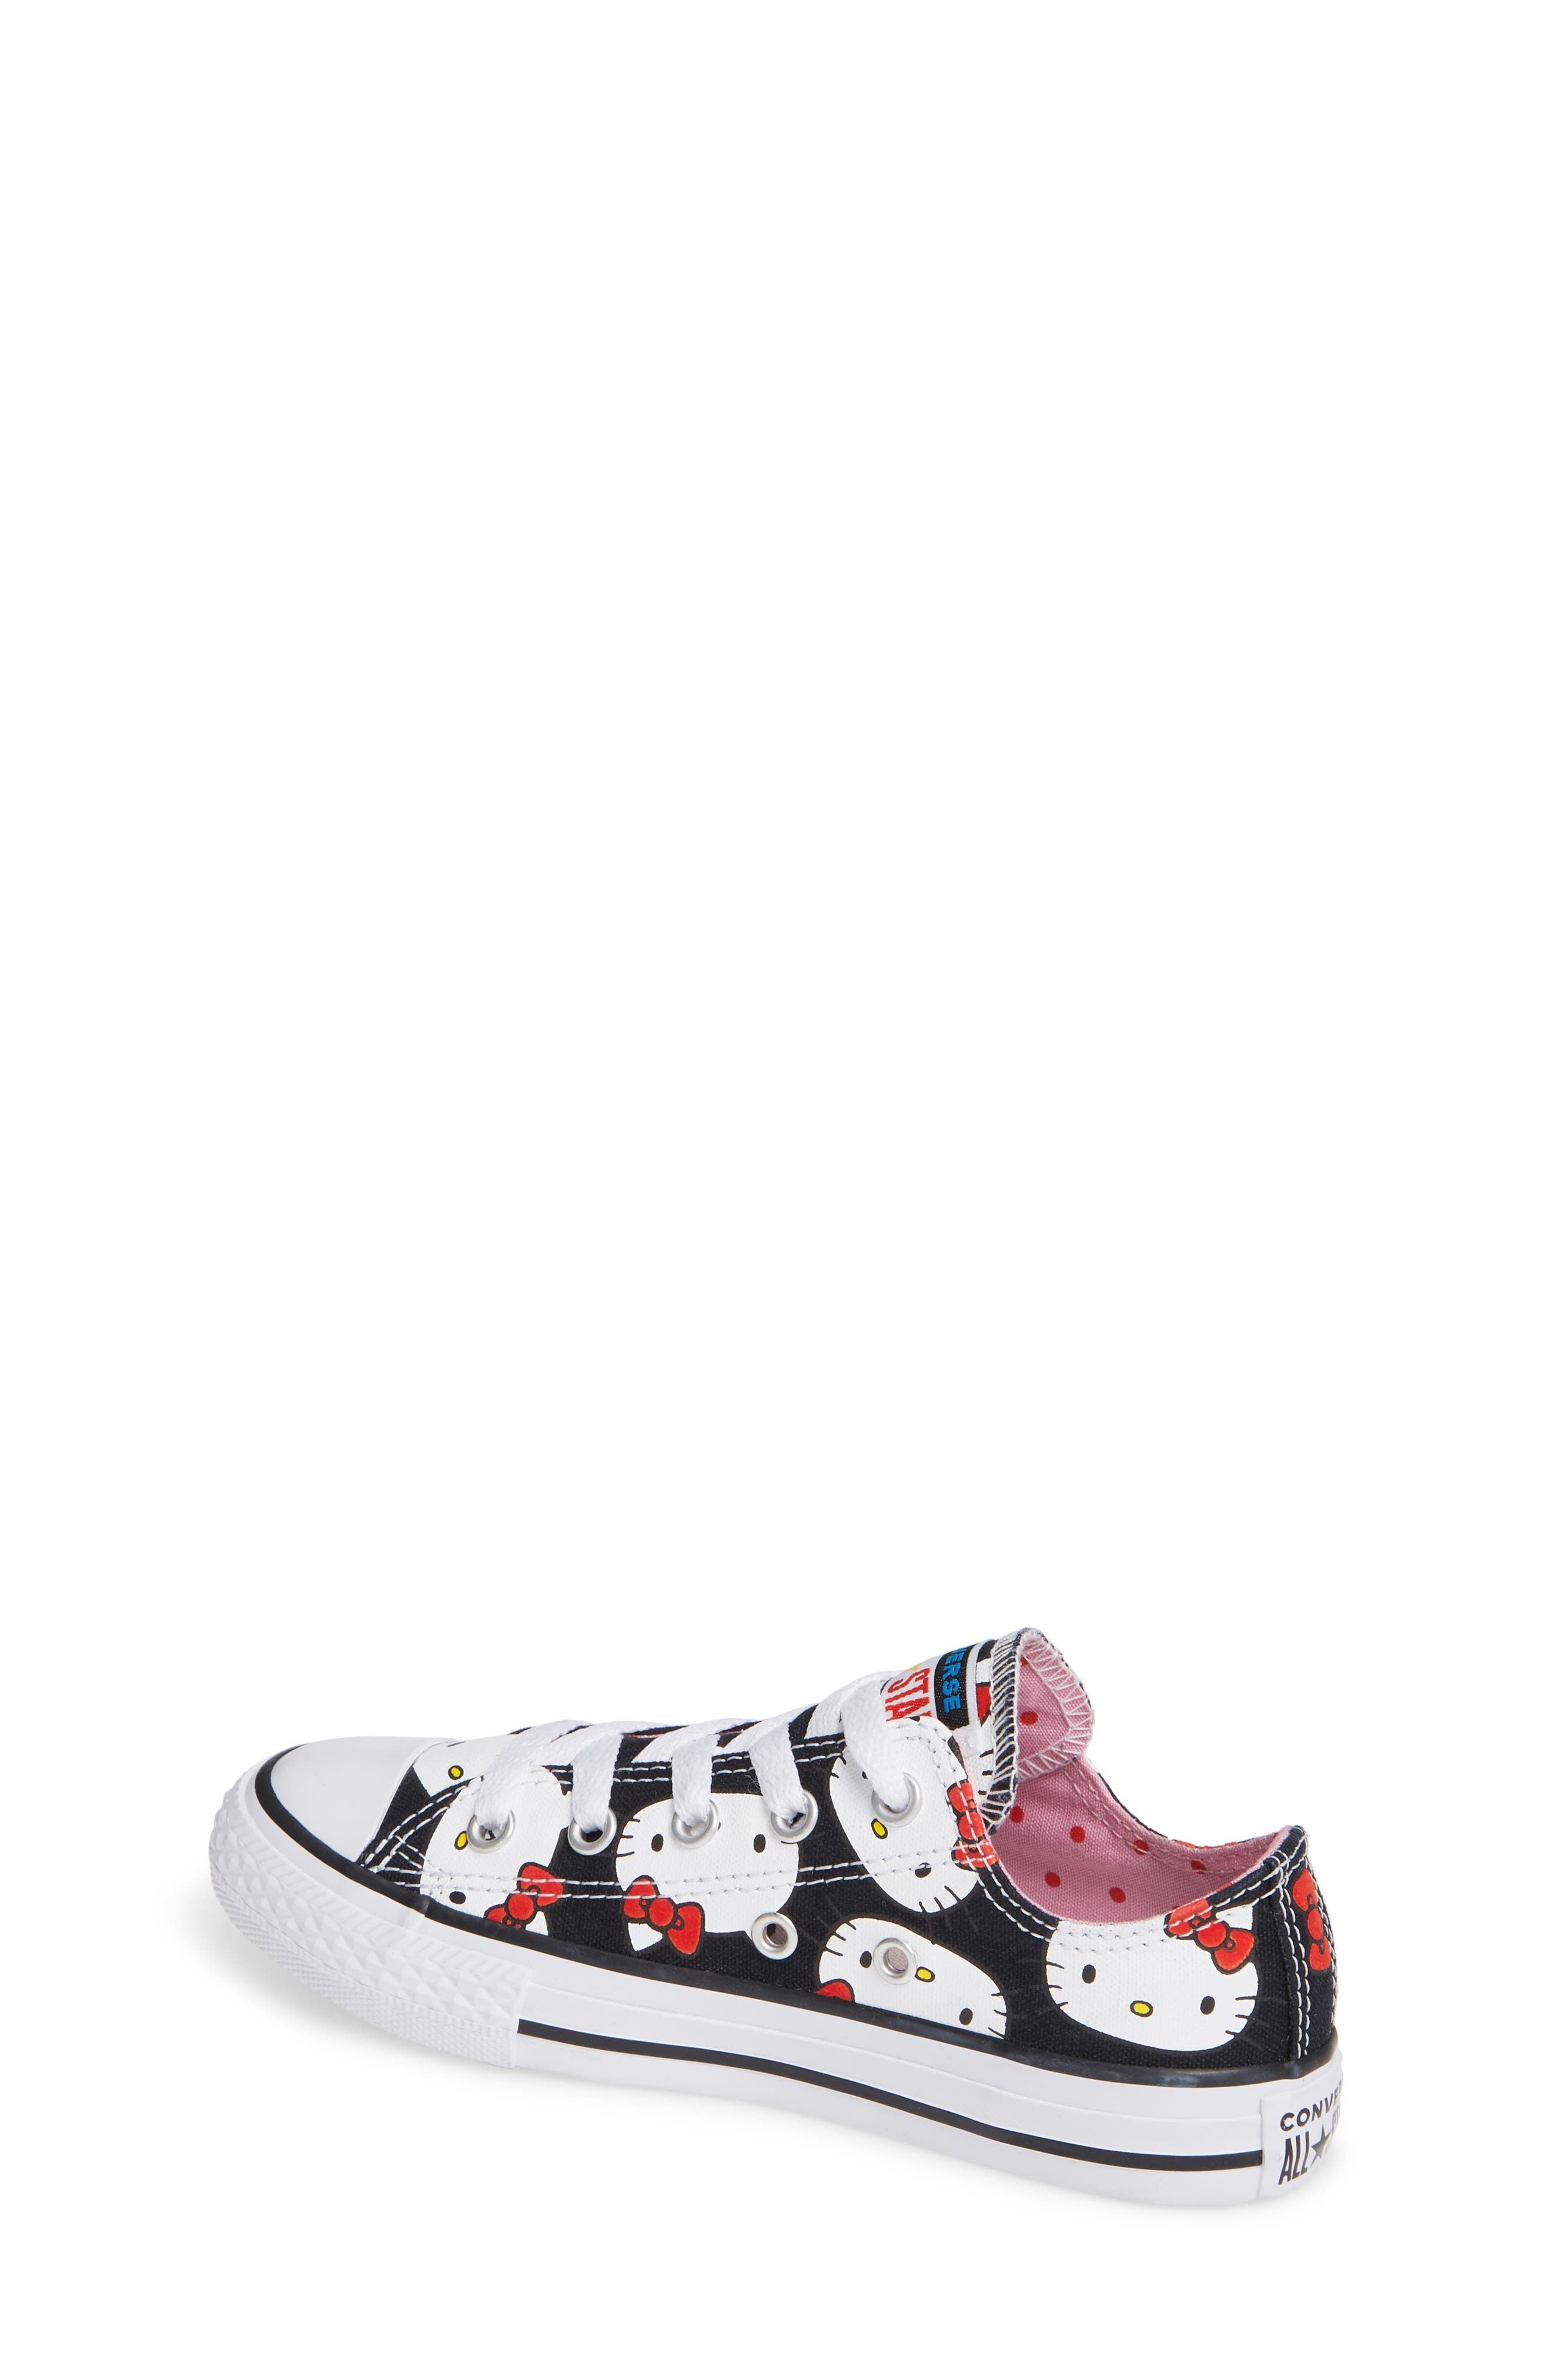 Chuck Taylor<sup>®</sup> All Star<sup>®</sup> Hello Kitty<sup>®</sup> Sneaker,                             Alternate thumbnail 2, color,                             BLACK